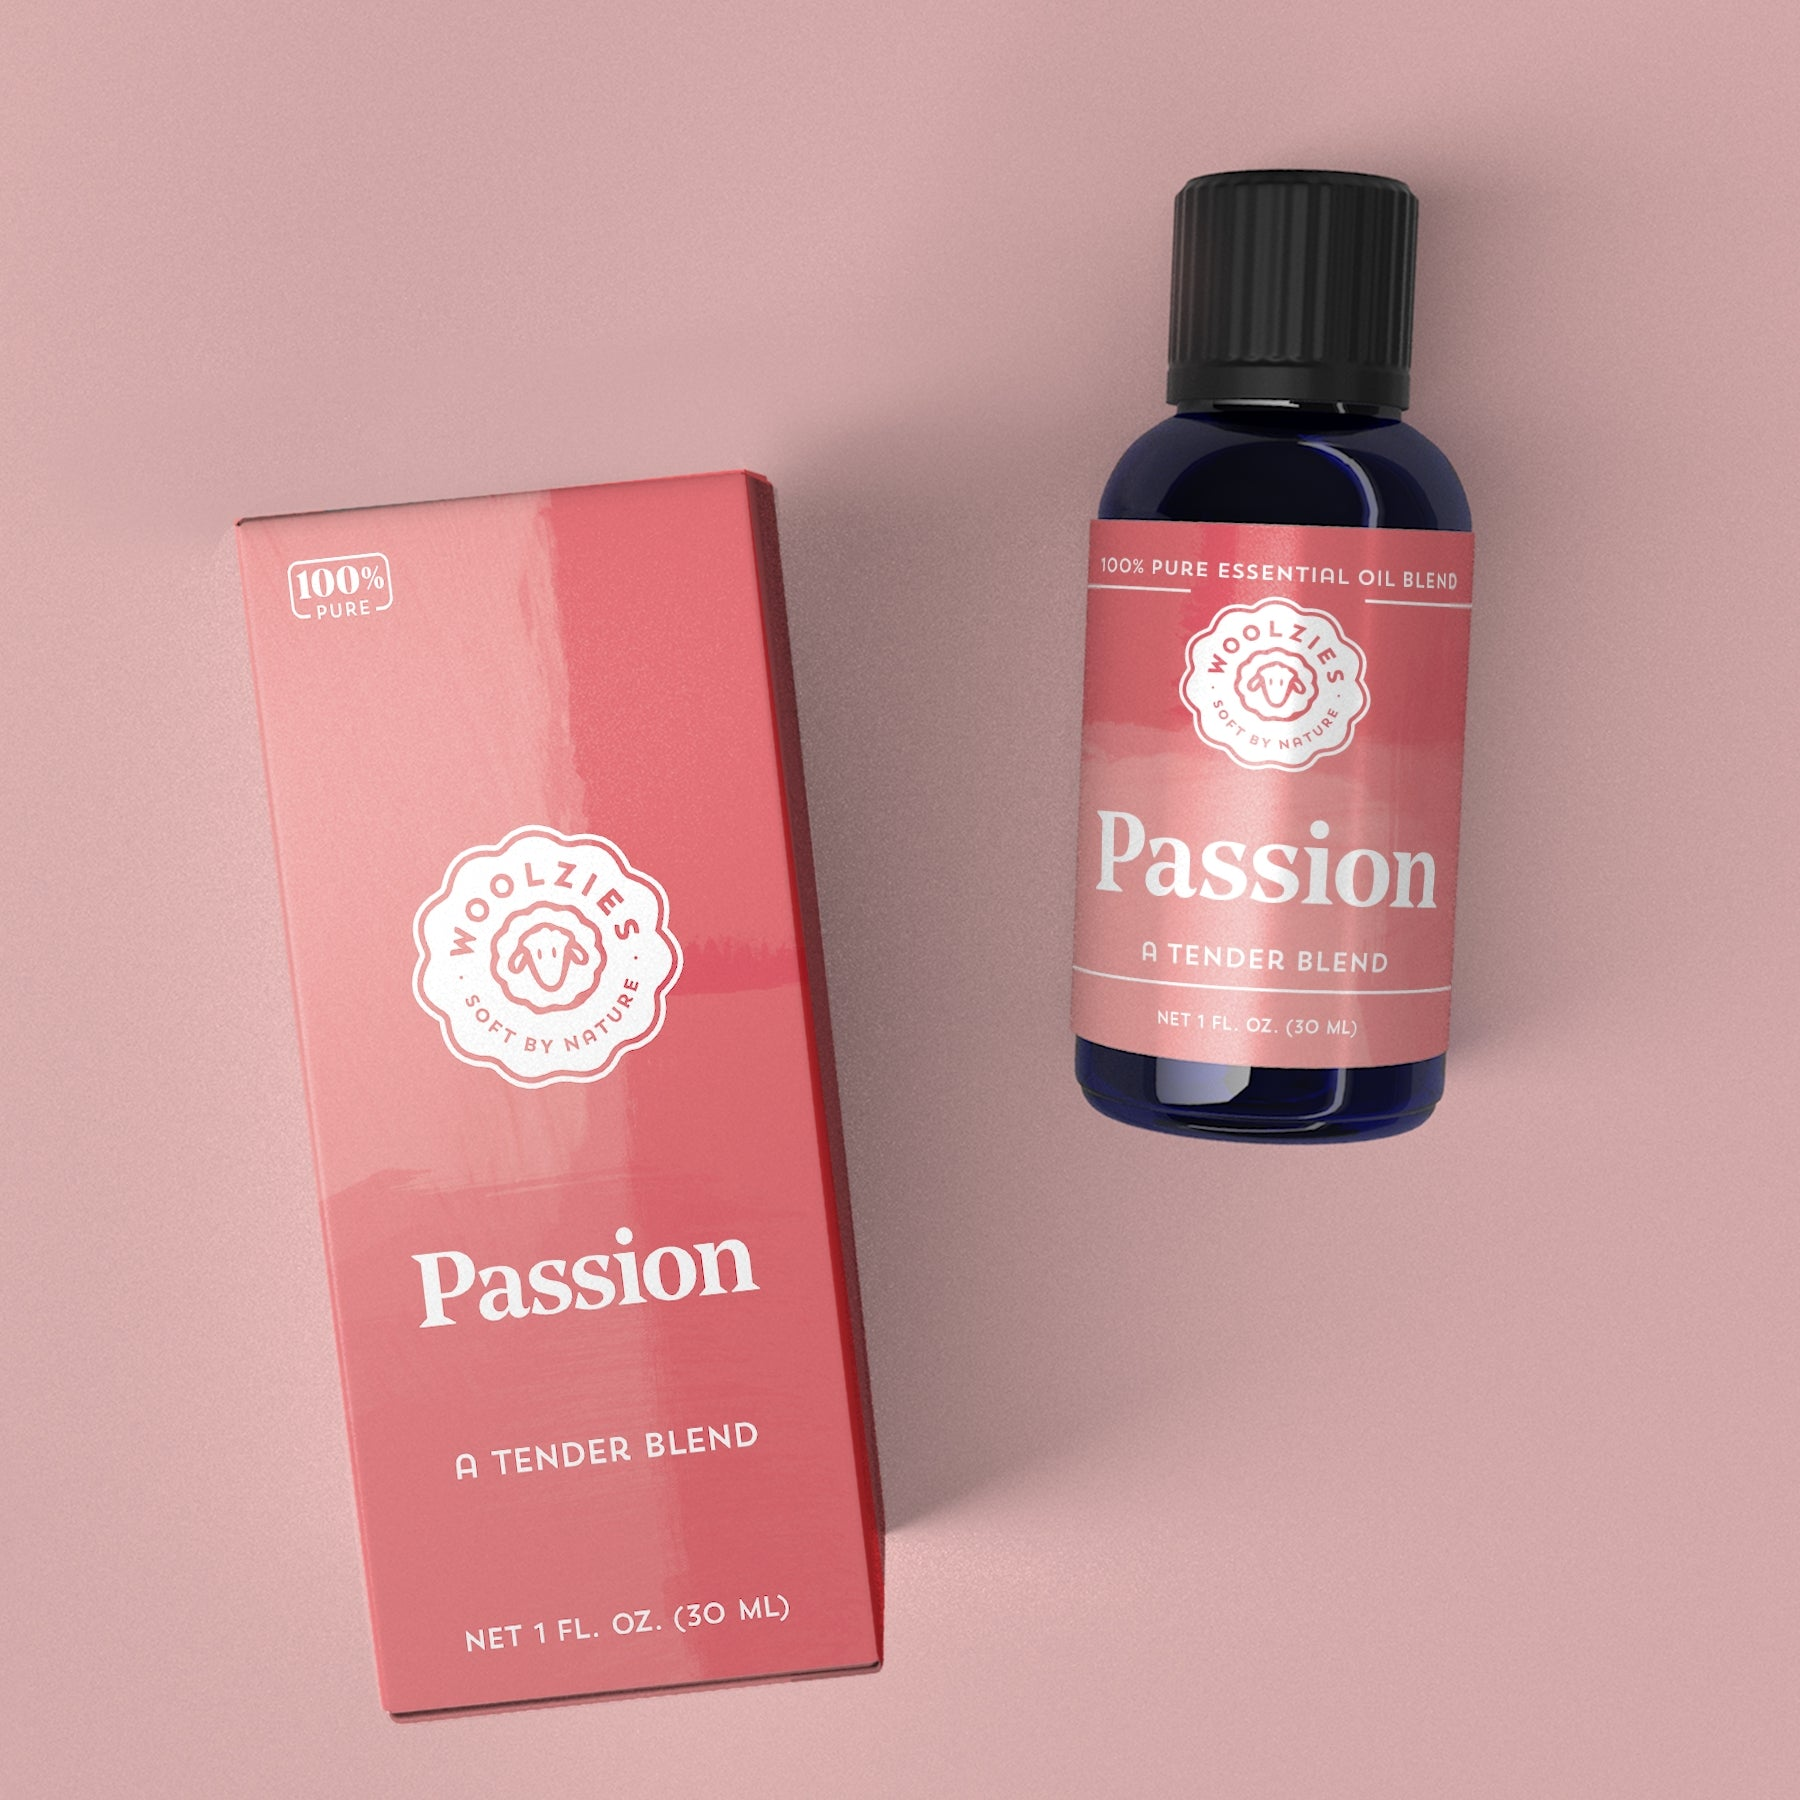 Passion Blend Essential Oil